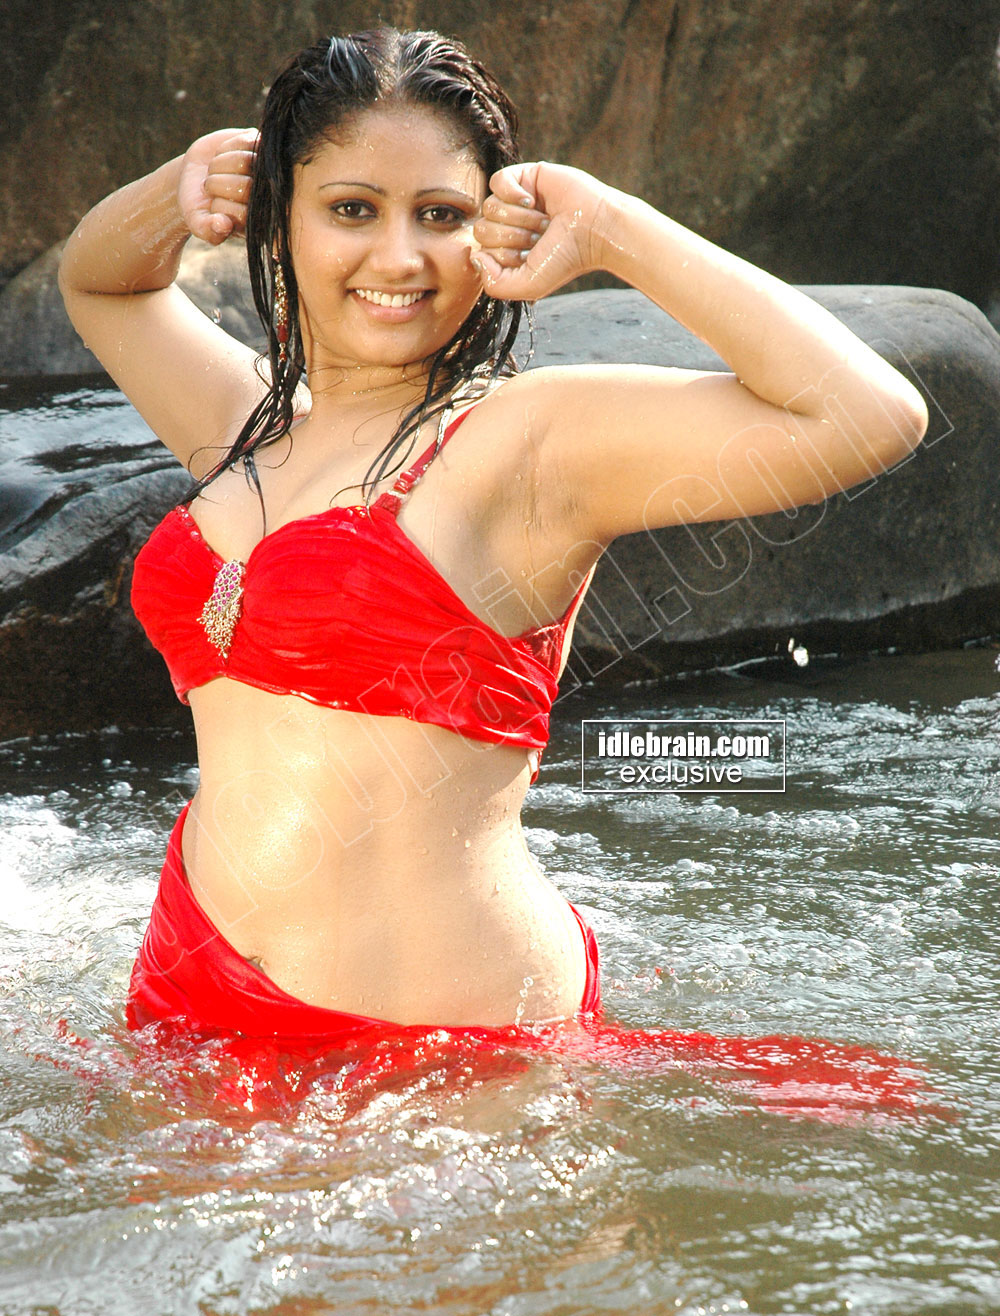 Wet south indian actress pics - South Indian Actresses Hot Pictures Indian actress wet photo gallery